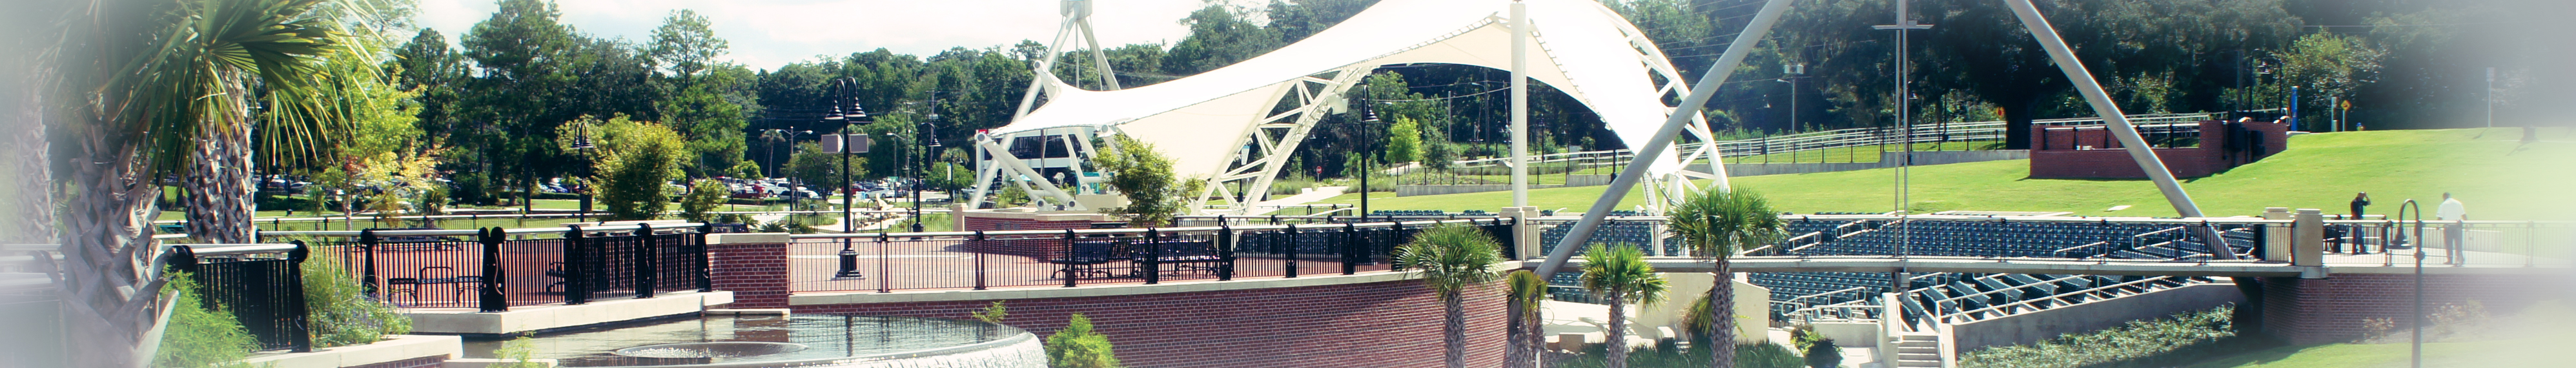 City of Tallahassee Banner Image